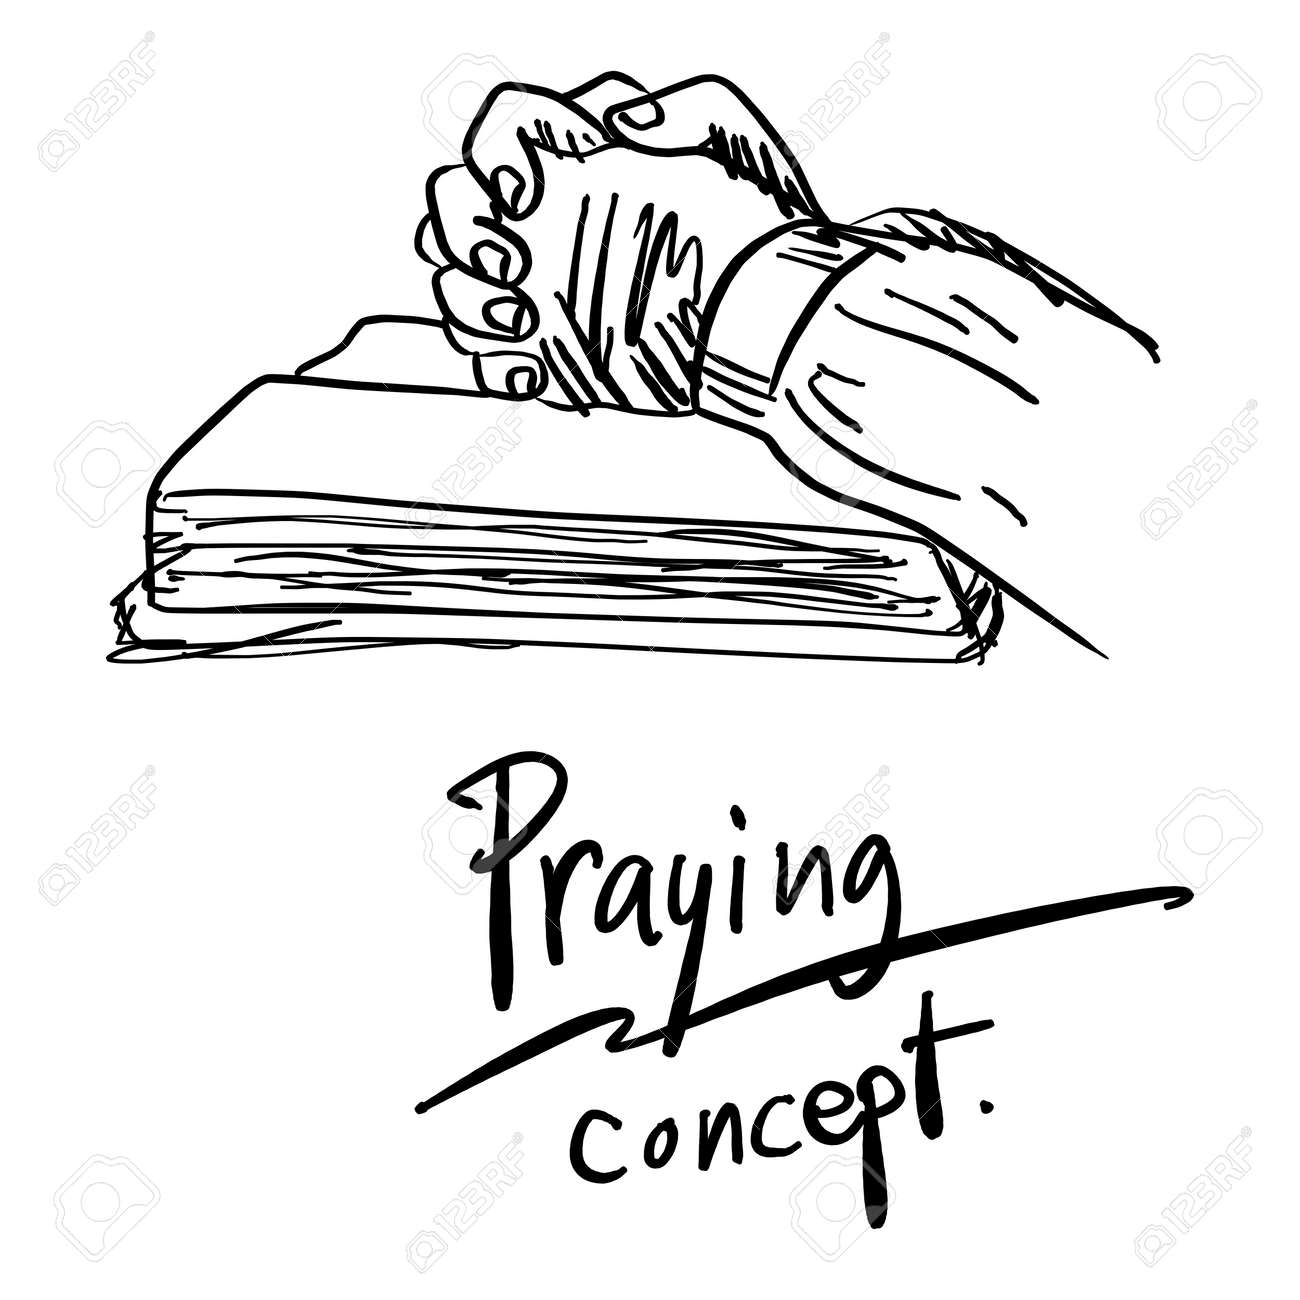 close up hand praying on bible vector illustration sketch hand